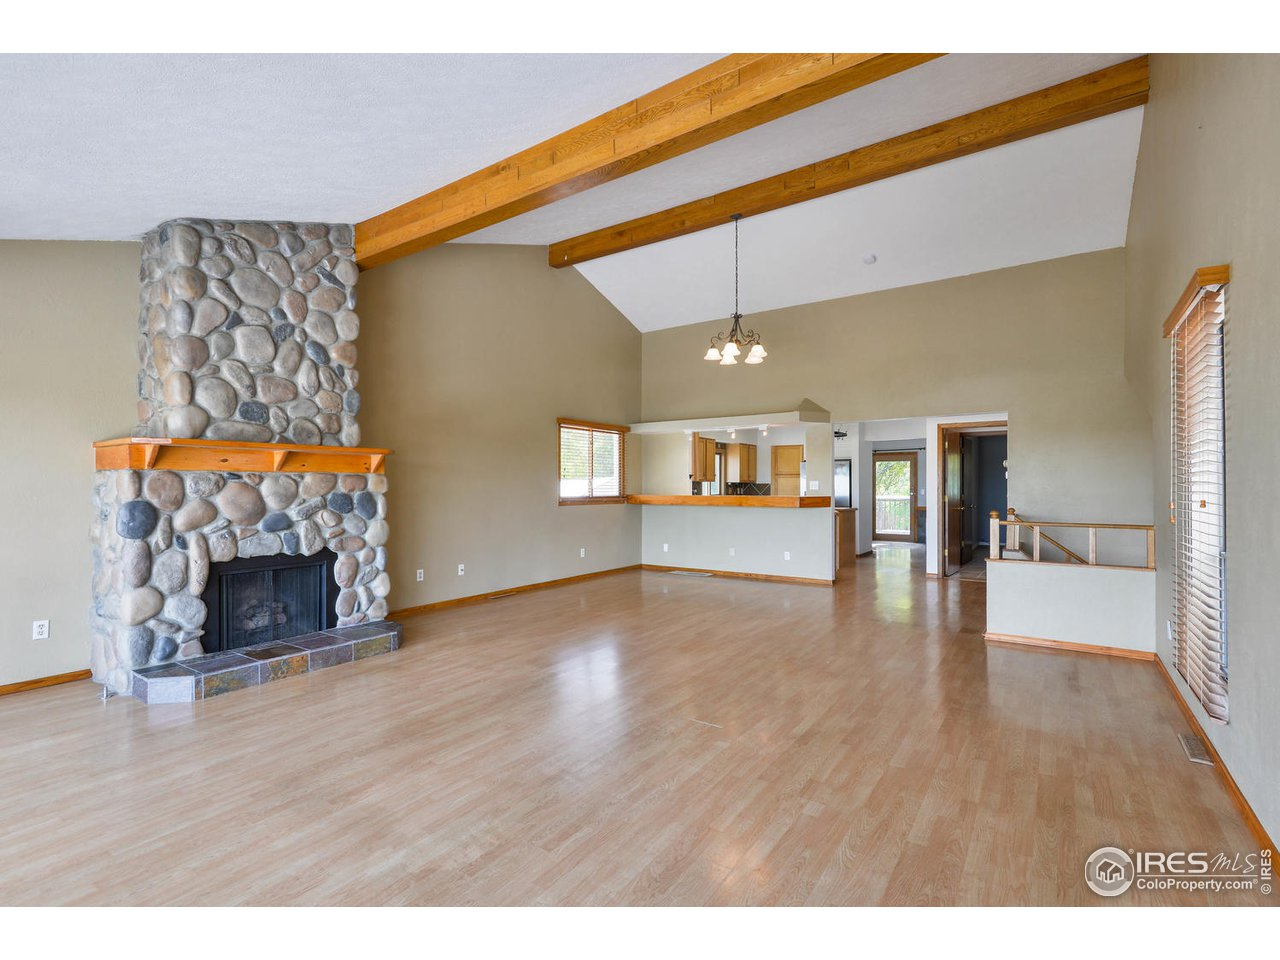 Stone fireplace and beamed ceiling